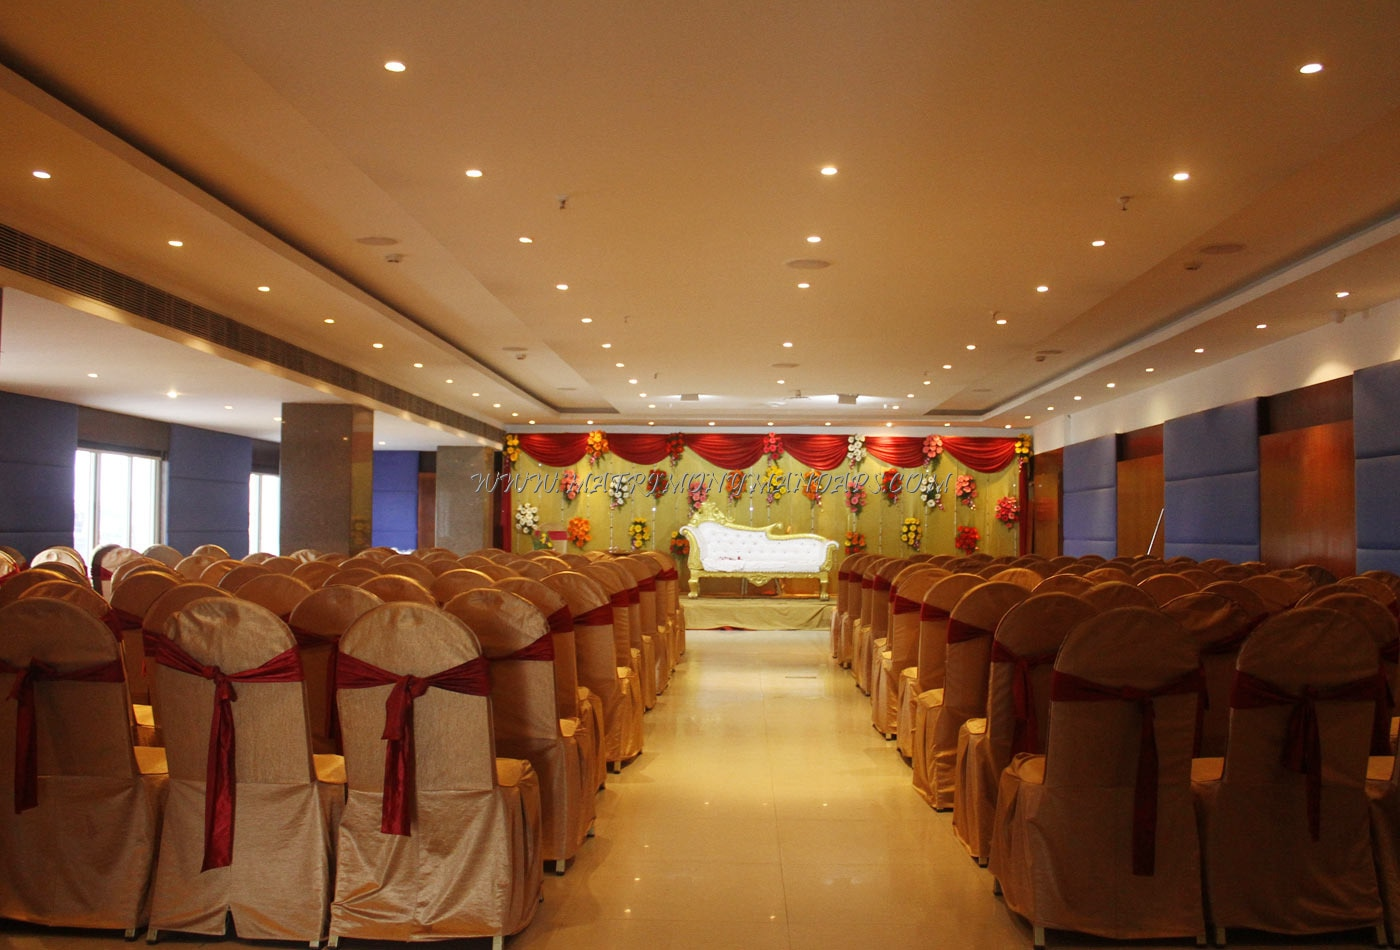 Find the availability of the Hotel Time Square Coral Banquet (A/C) in s p road, Hyderabad and avail special offers